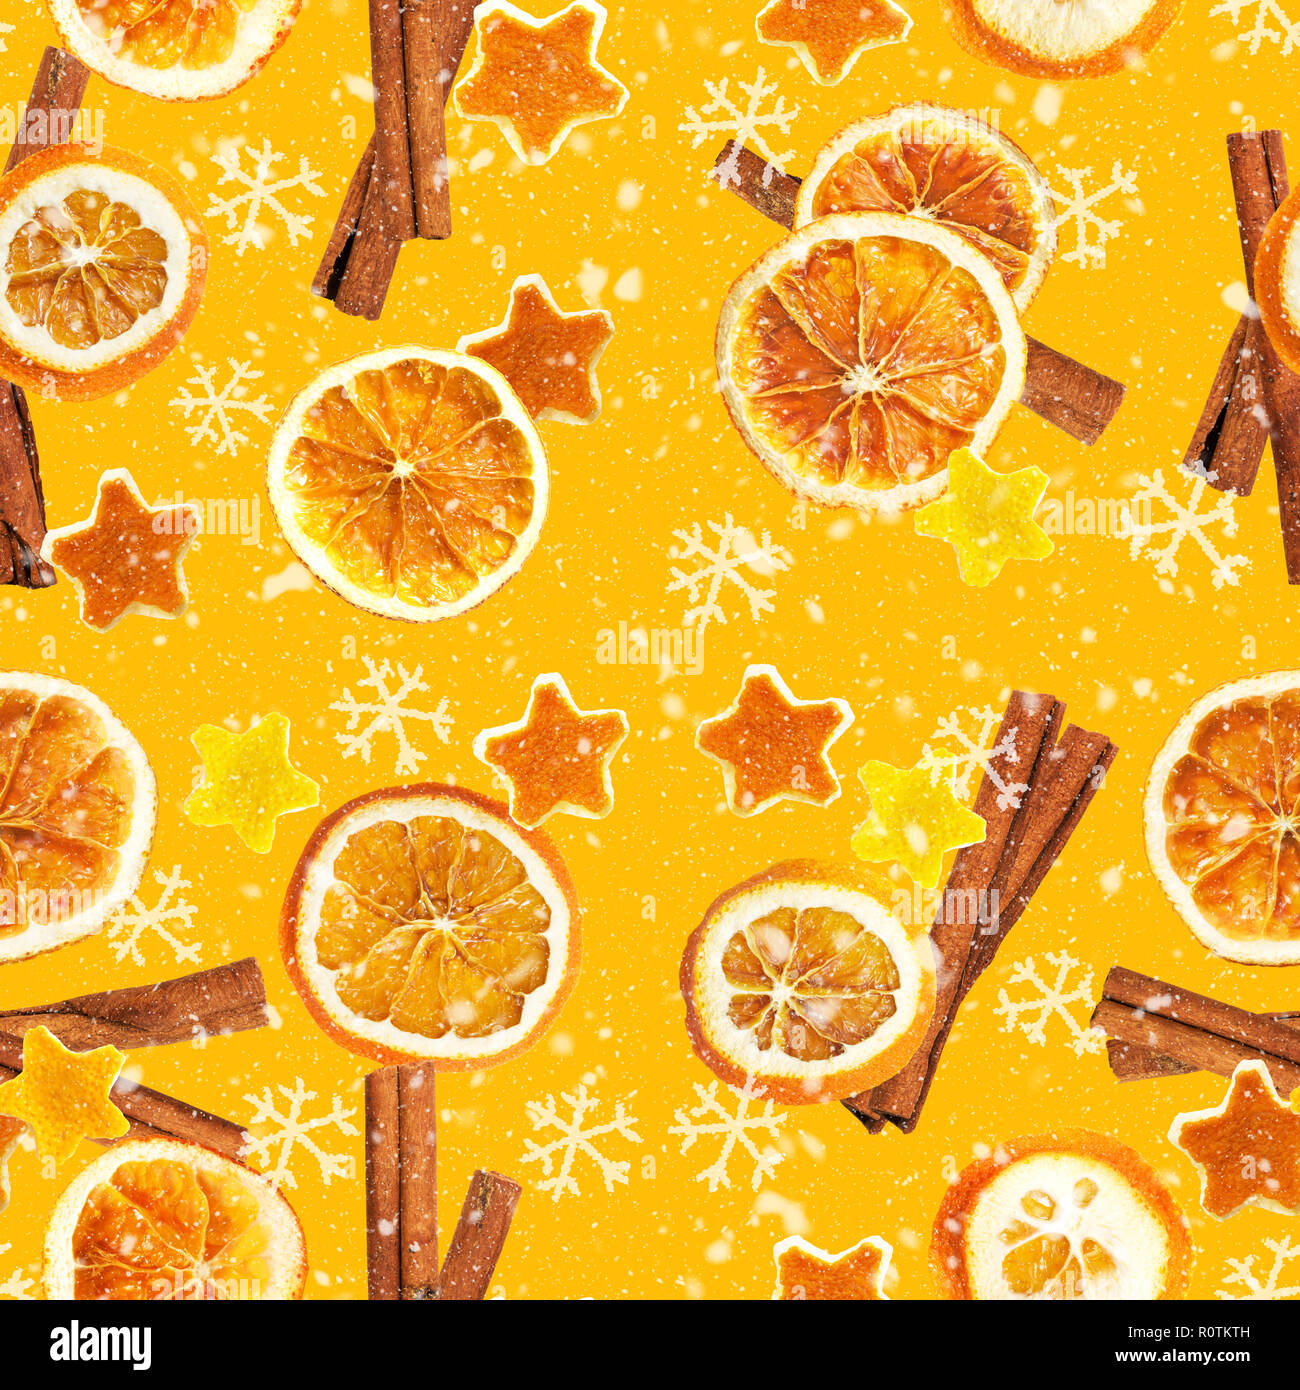 Christmas background of dried oranges, peel in the shape of a star and with cinnamon. Seamless background - Stock Image